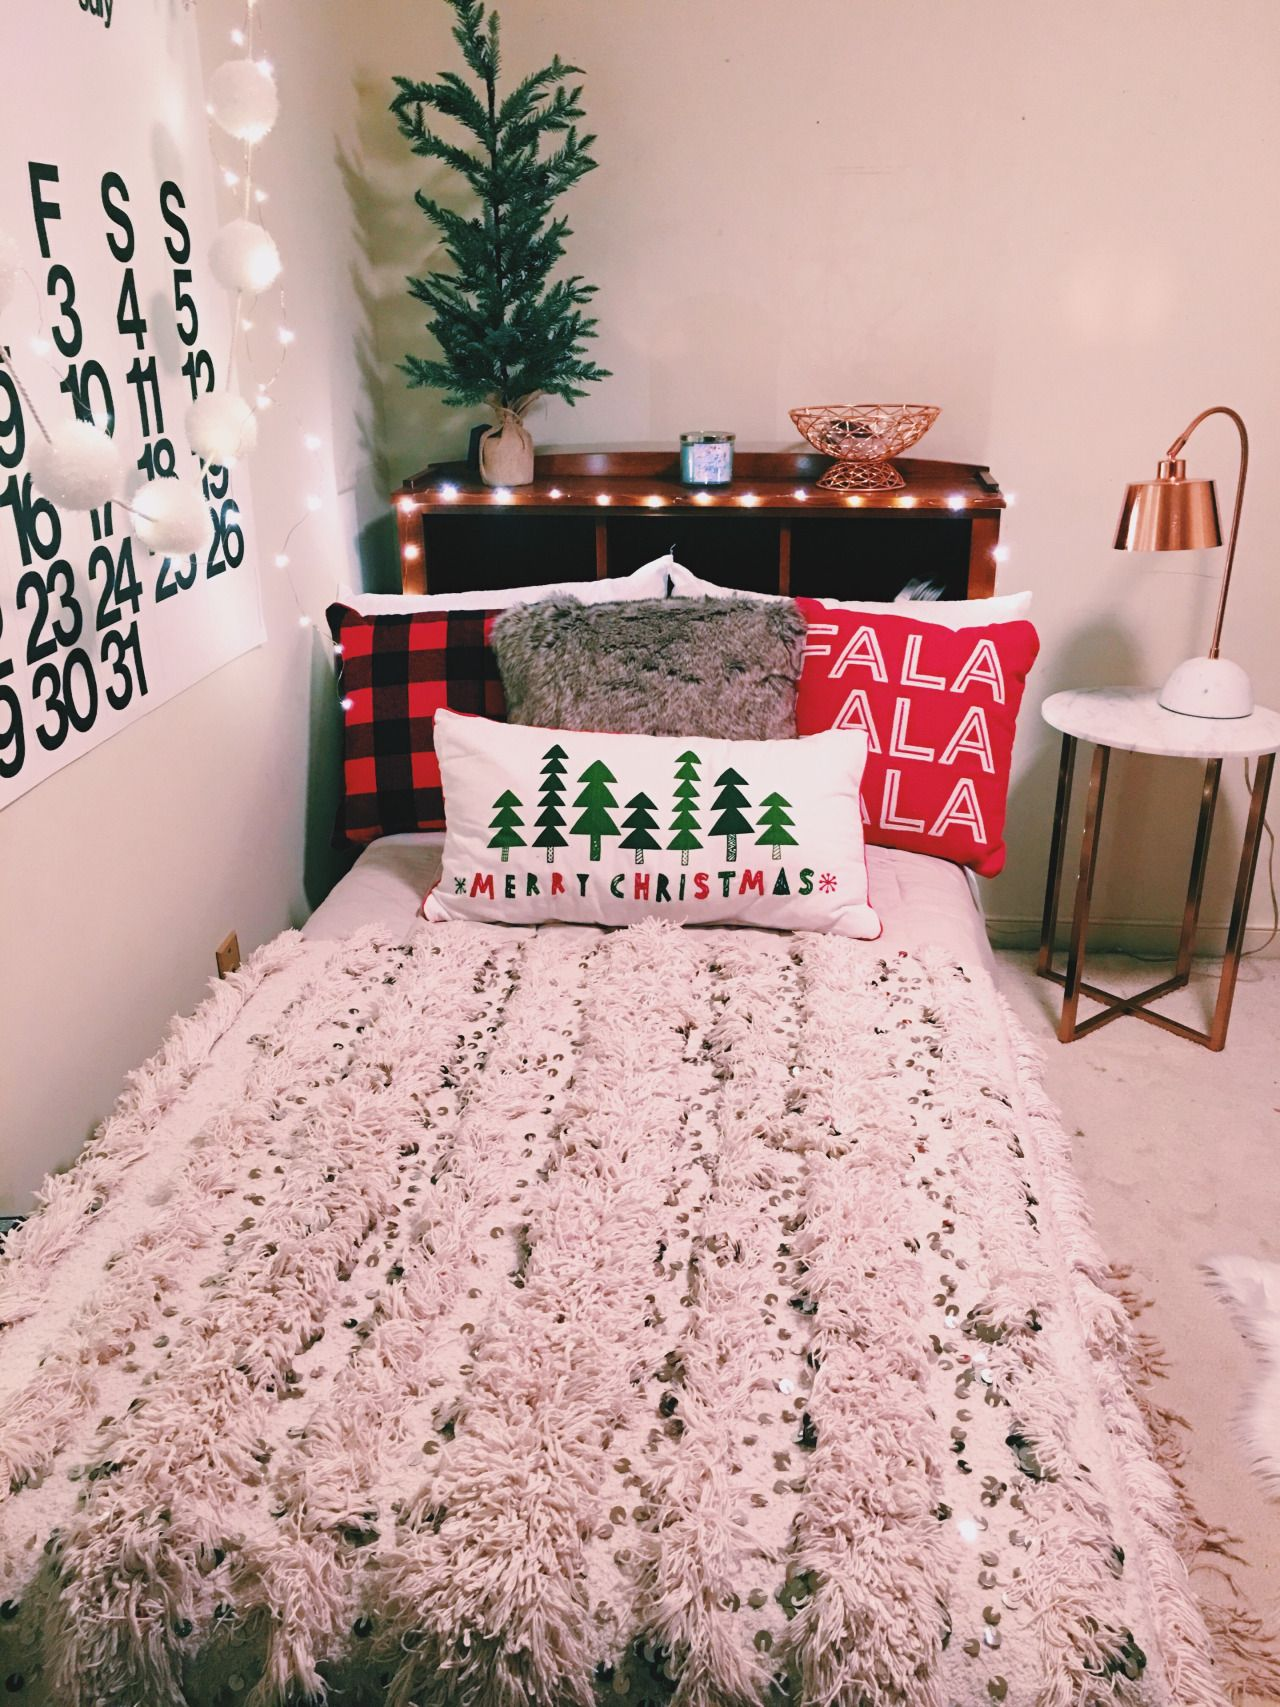 3 easy dorm decorating ideas for the winter holidays | decoration